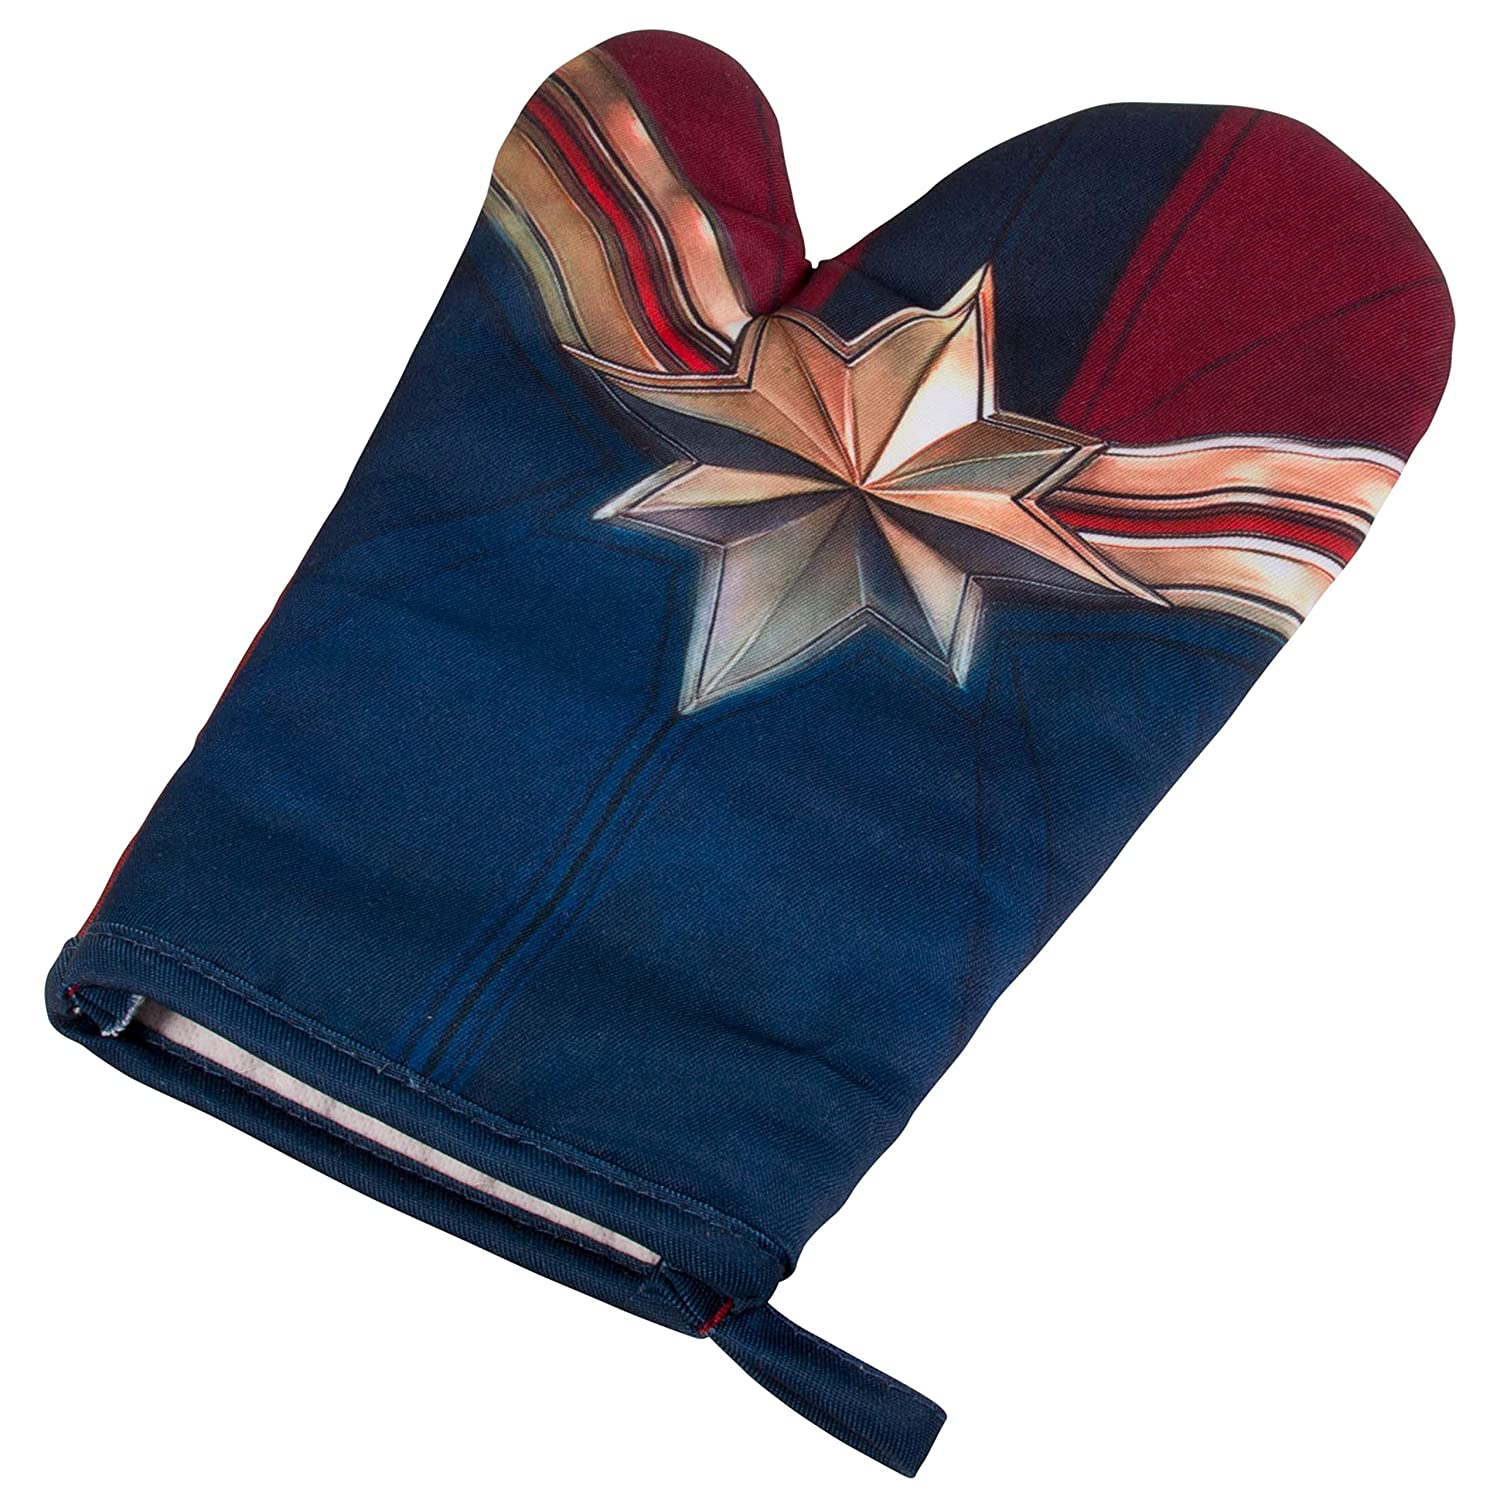 Seven20 Captain Marvel Oven Mitt - Heat Resistant - Right Hand - 100% Polyester